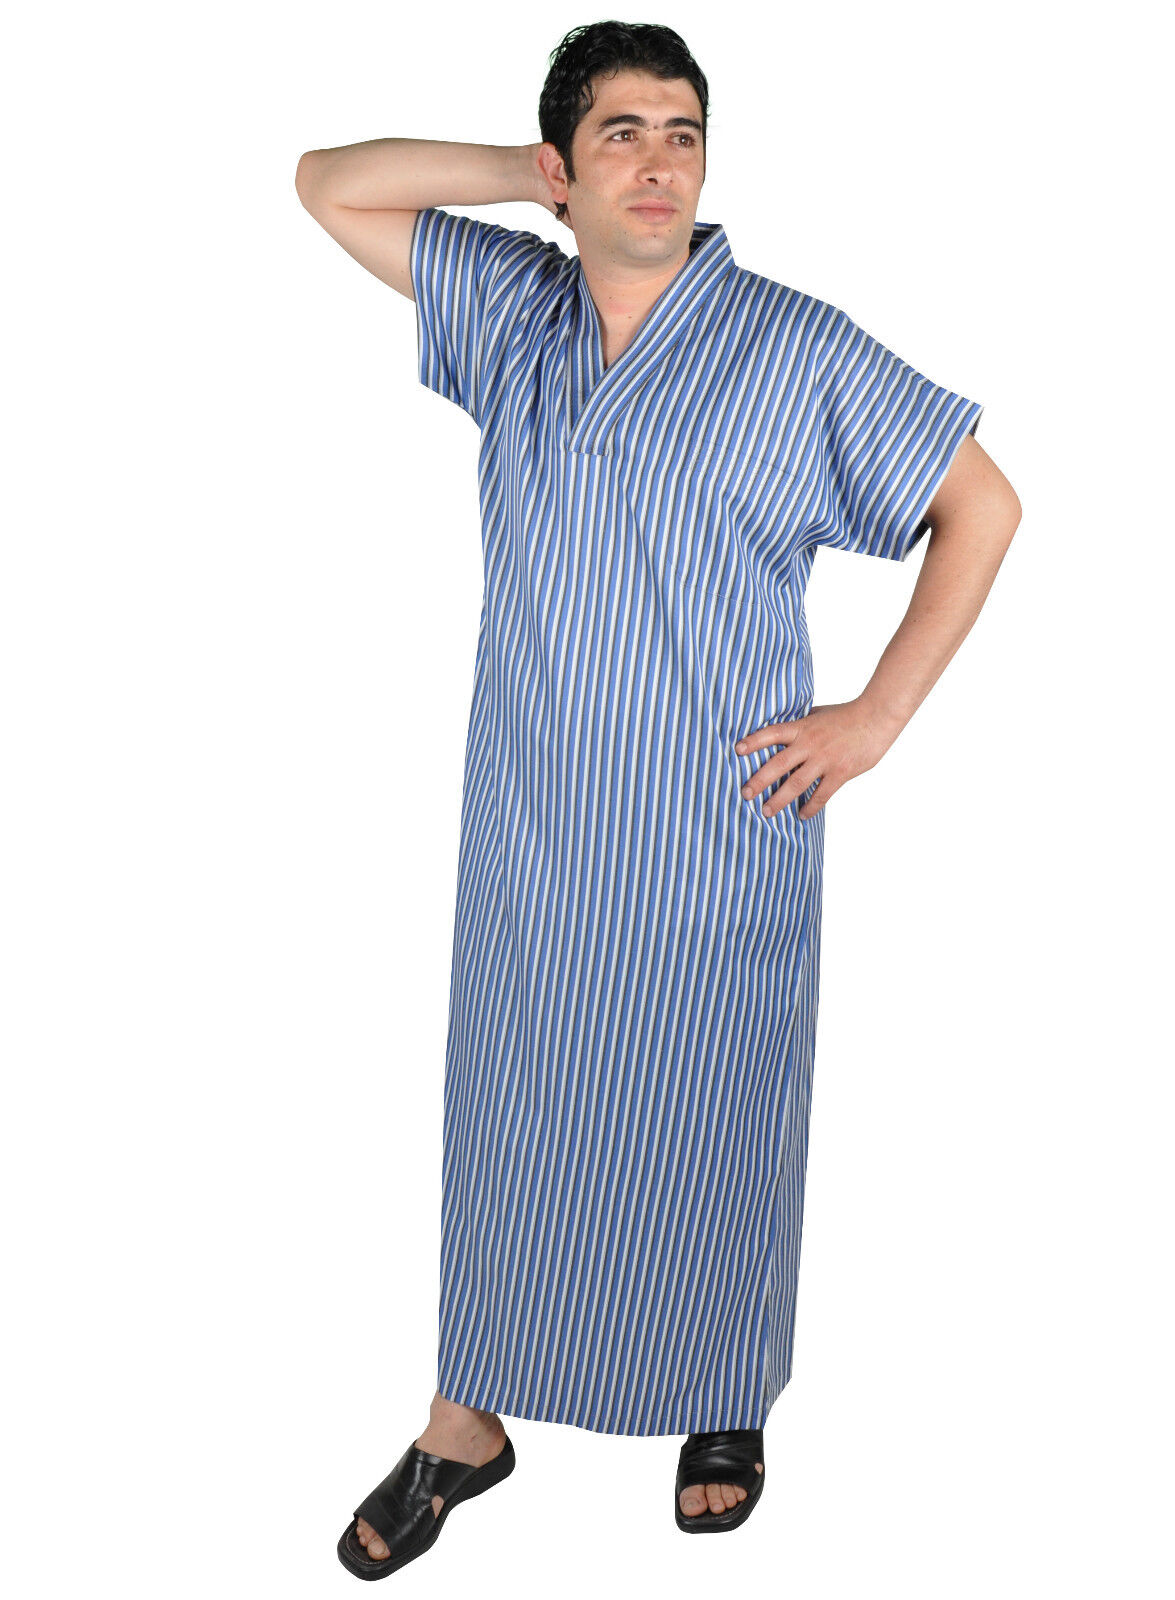 Men's Kaftan Tunic Housedress Summer Dress Night Gown Sauna- Wellness Gown 670